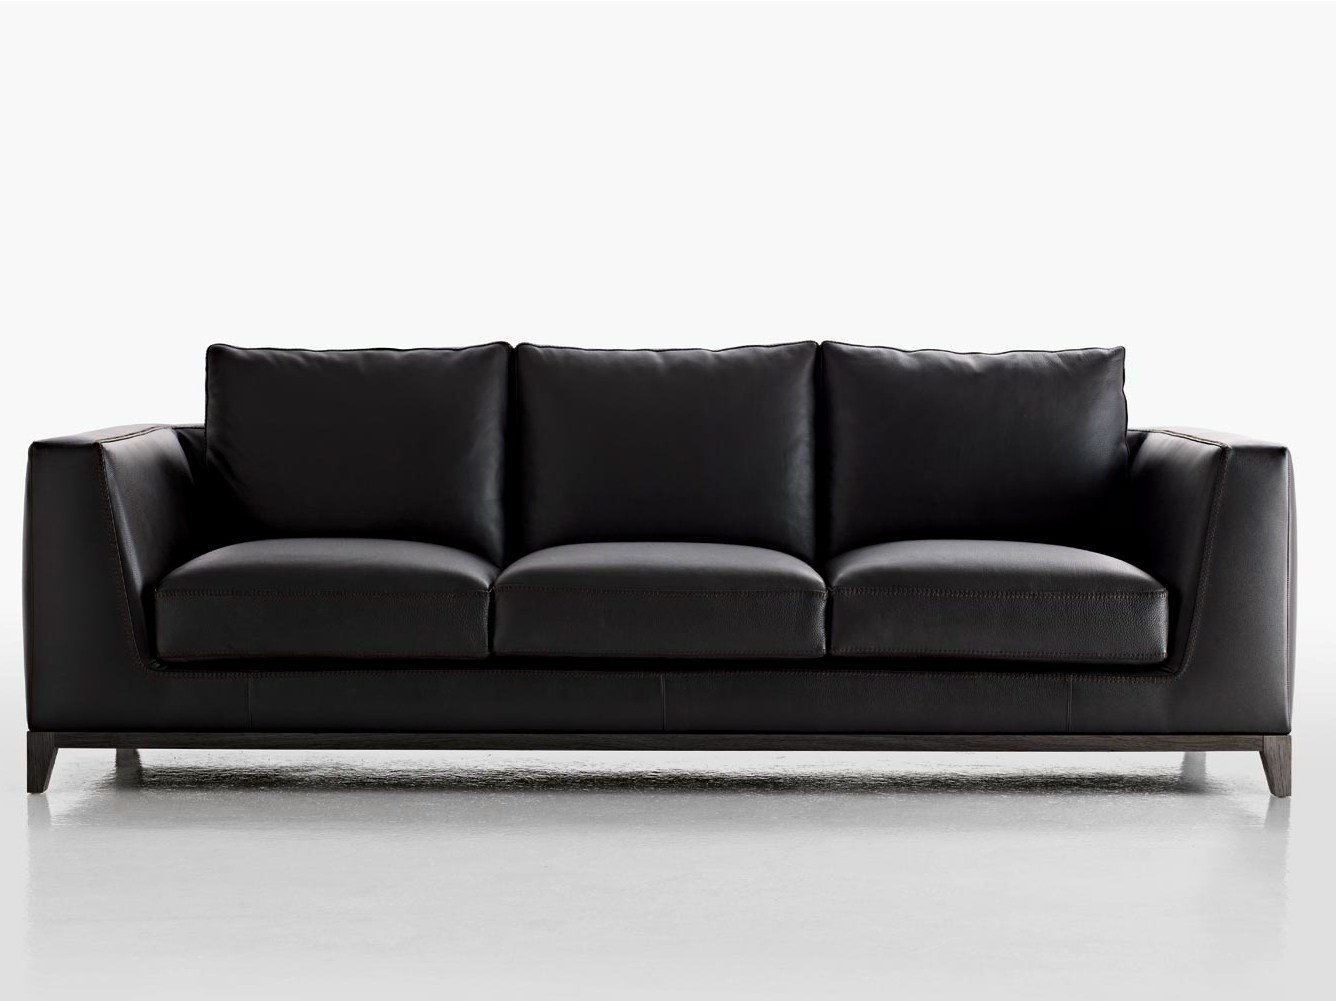 3 seater upholstered leather sofa lutetia collection by for B b italia maxalto sofa